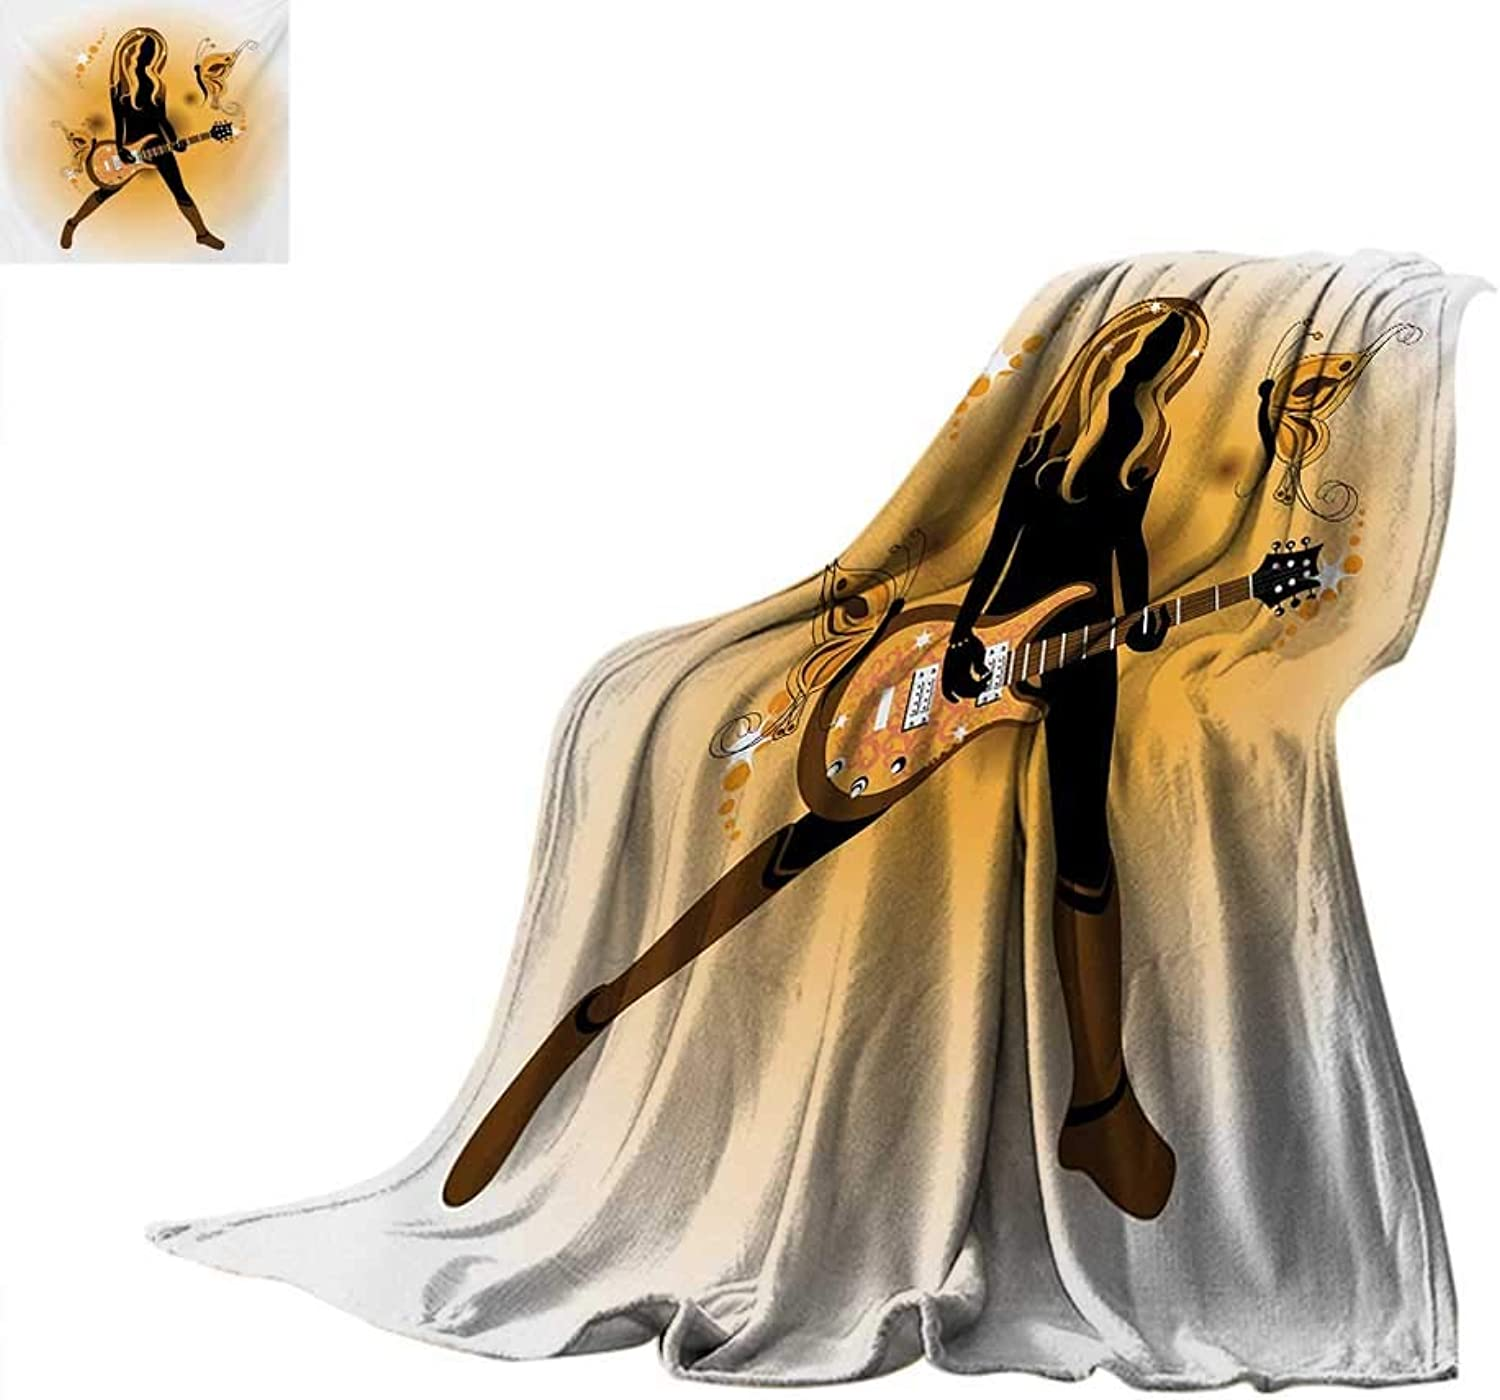 Popstar Party Digital Printing Blanket Girl Silhouette with Hairstyle and Butterflies Playing Guitar Digital Printing Blanket 60 x50  orange Brown Dark Brown